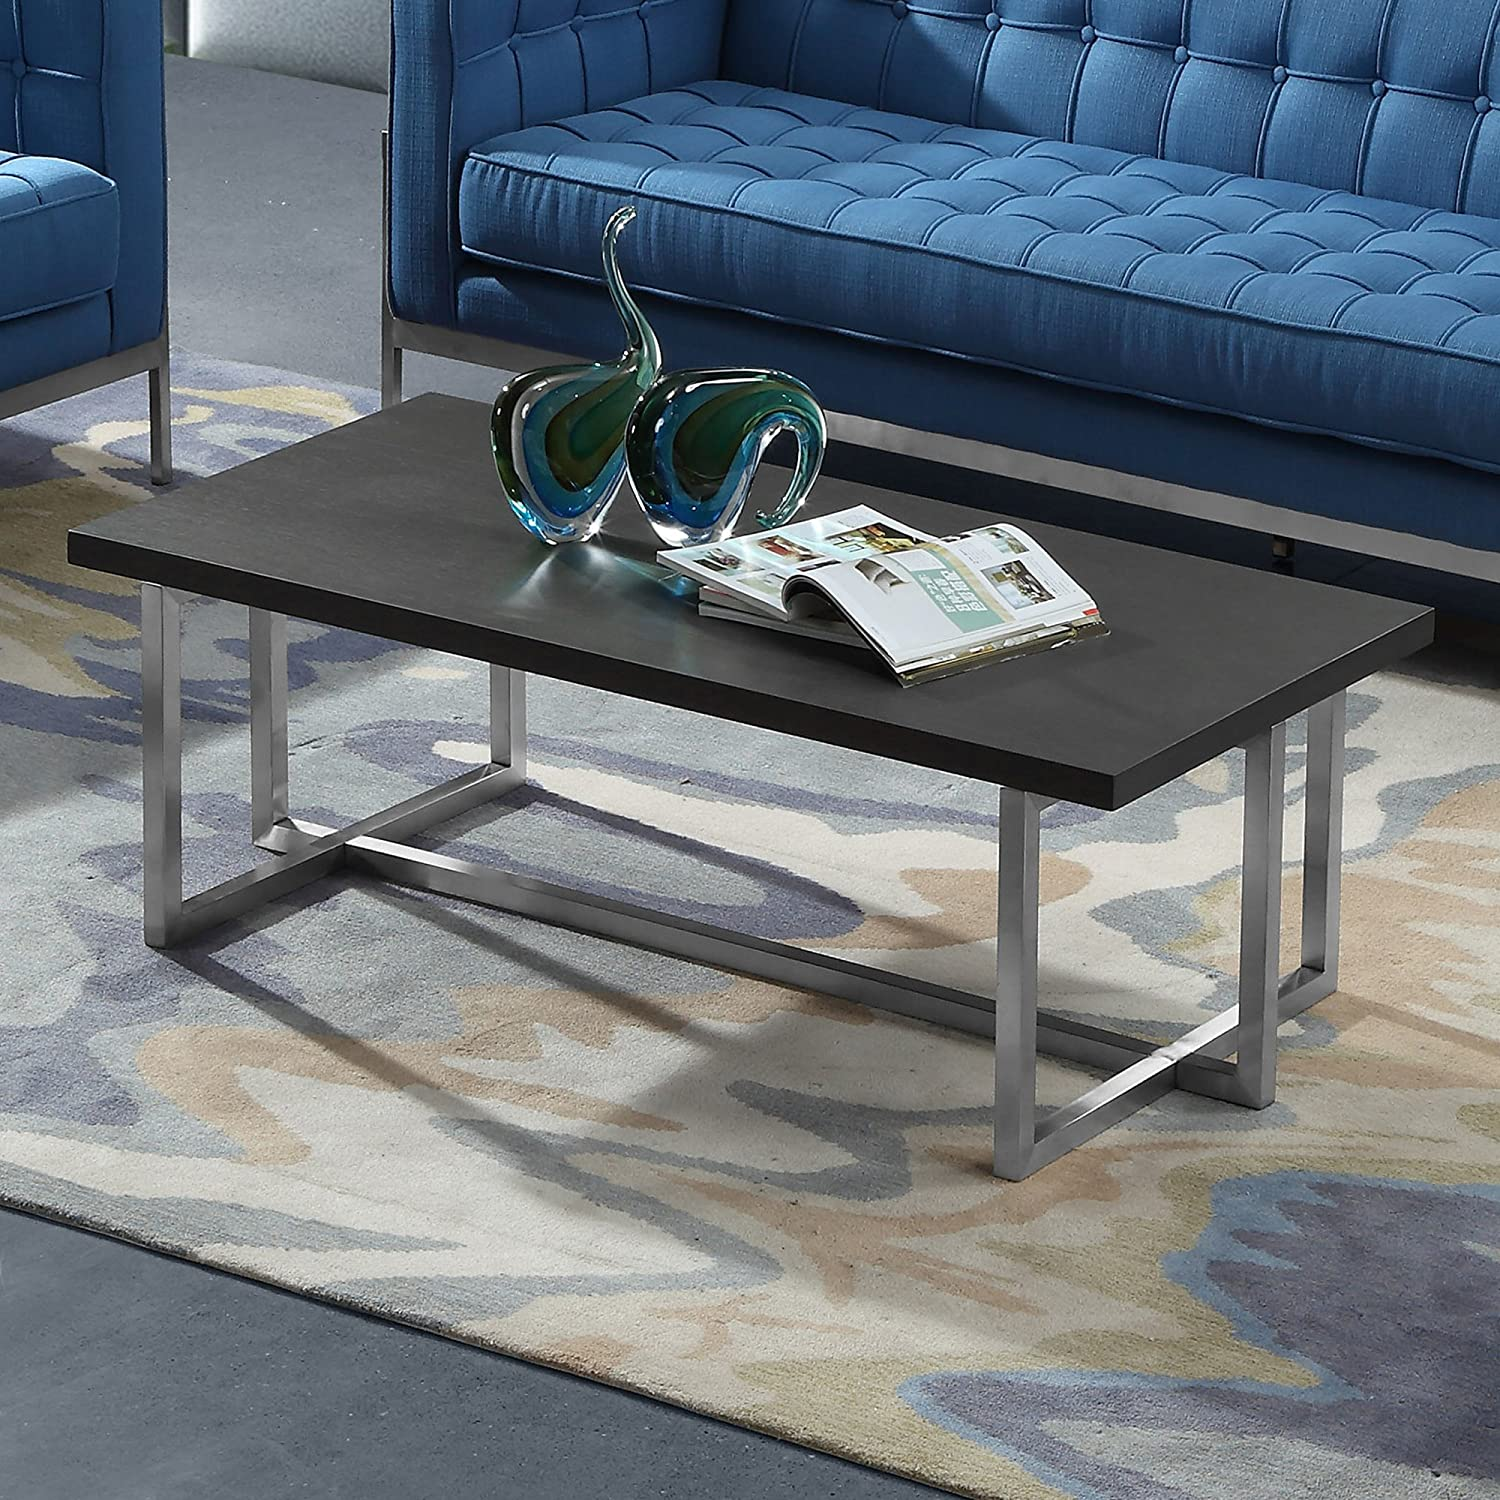 - Amazon.com: Topaz Contemporary Coffee Table: Kitchen & Dining